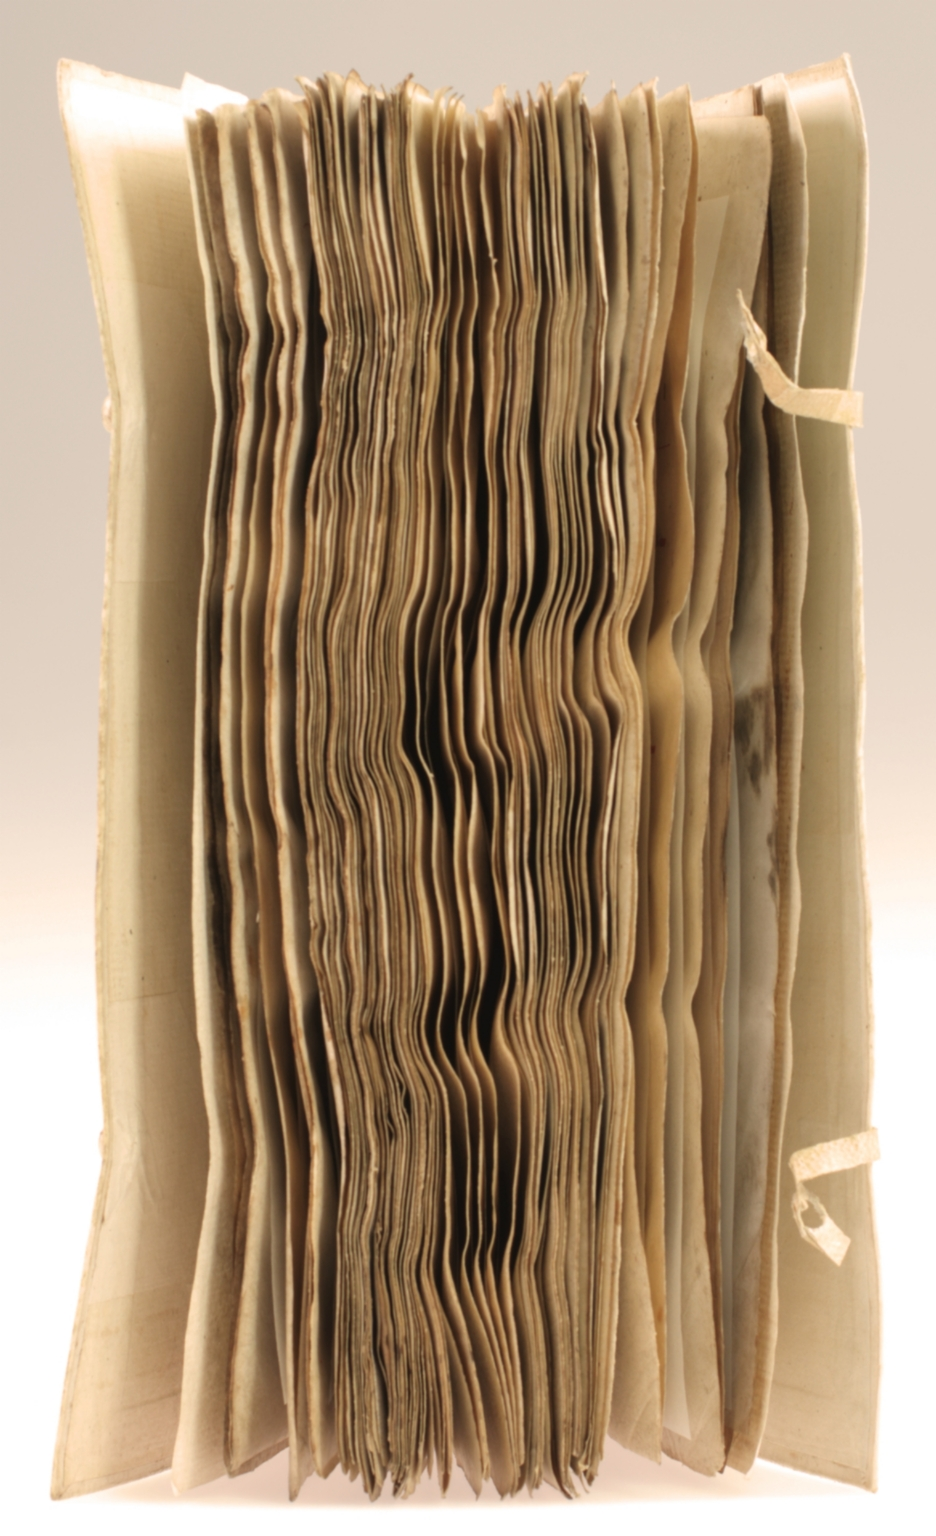 Processional, fore-edge